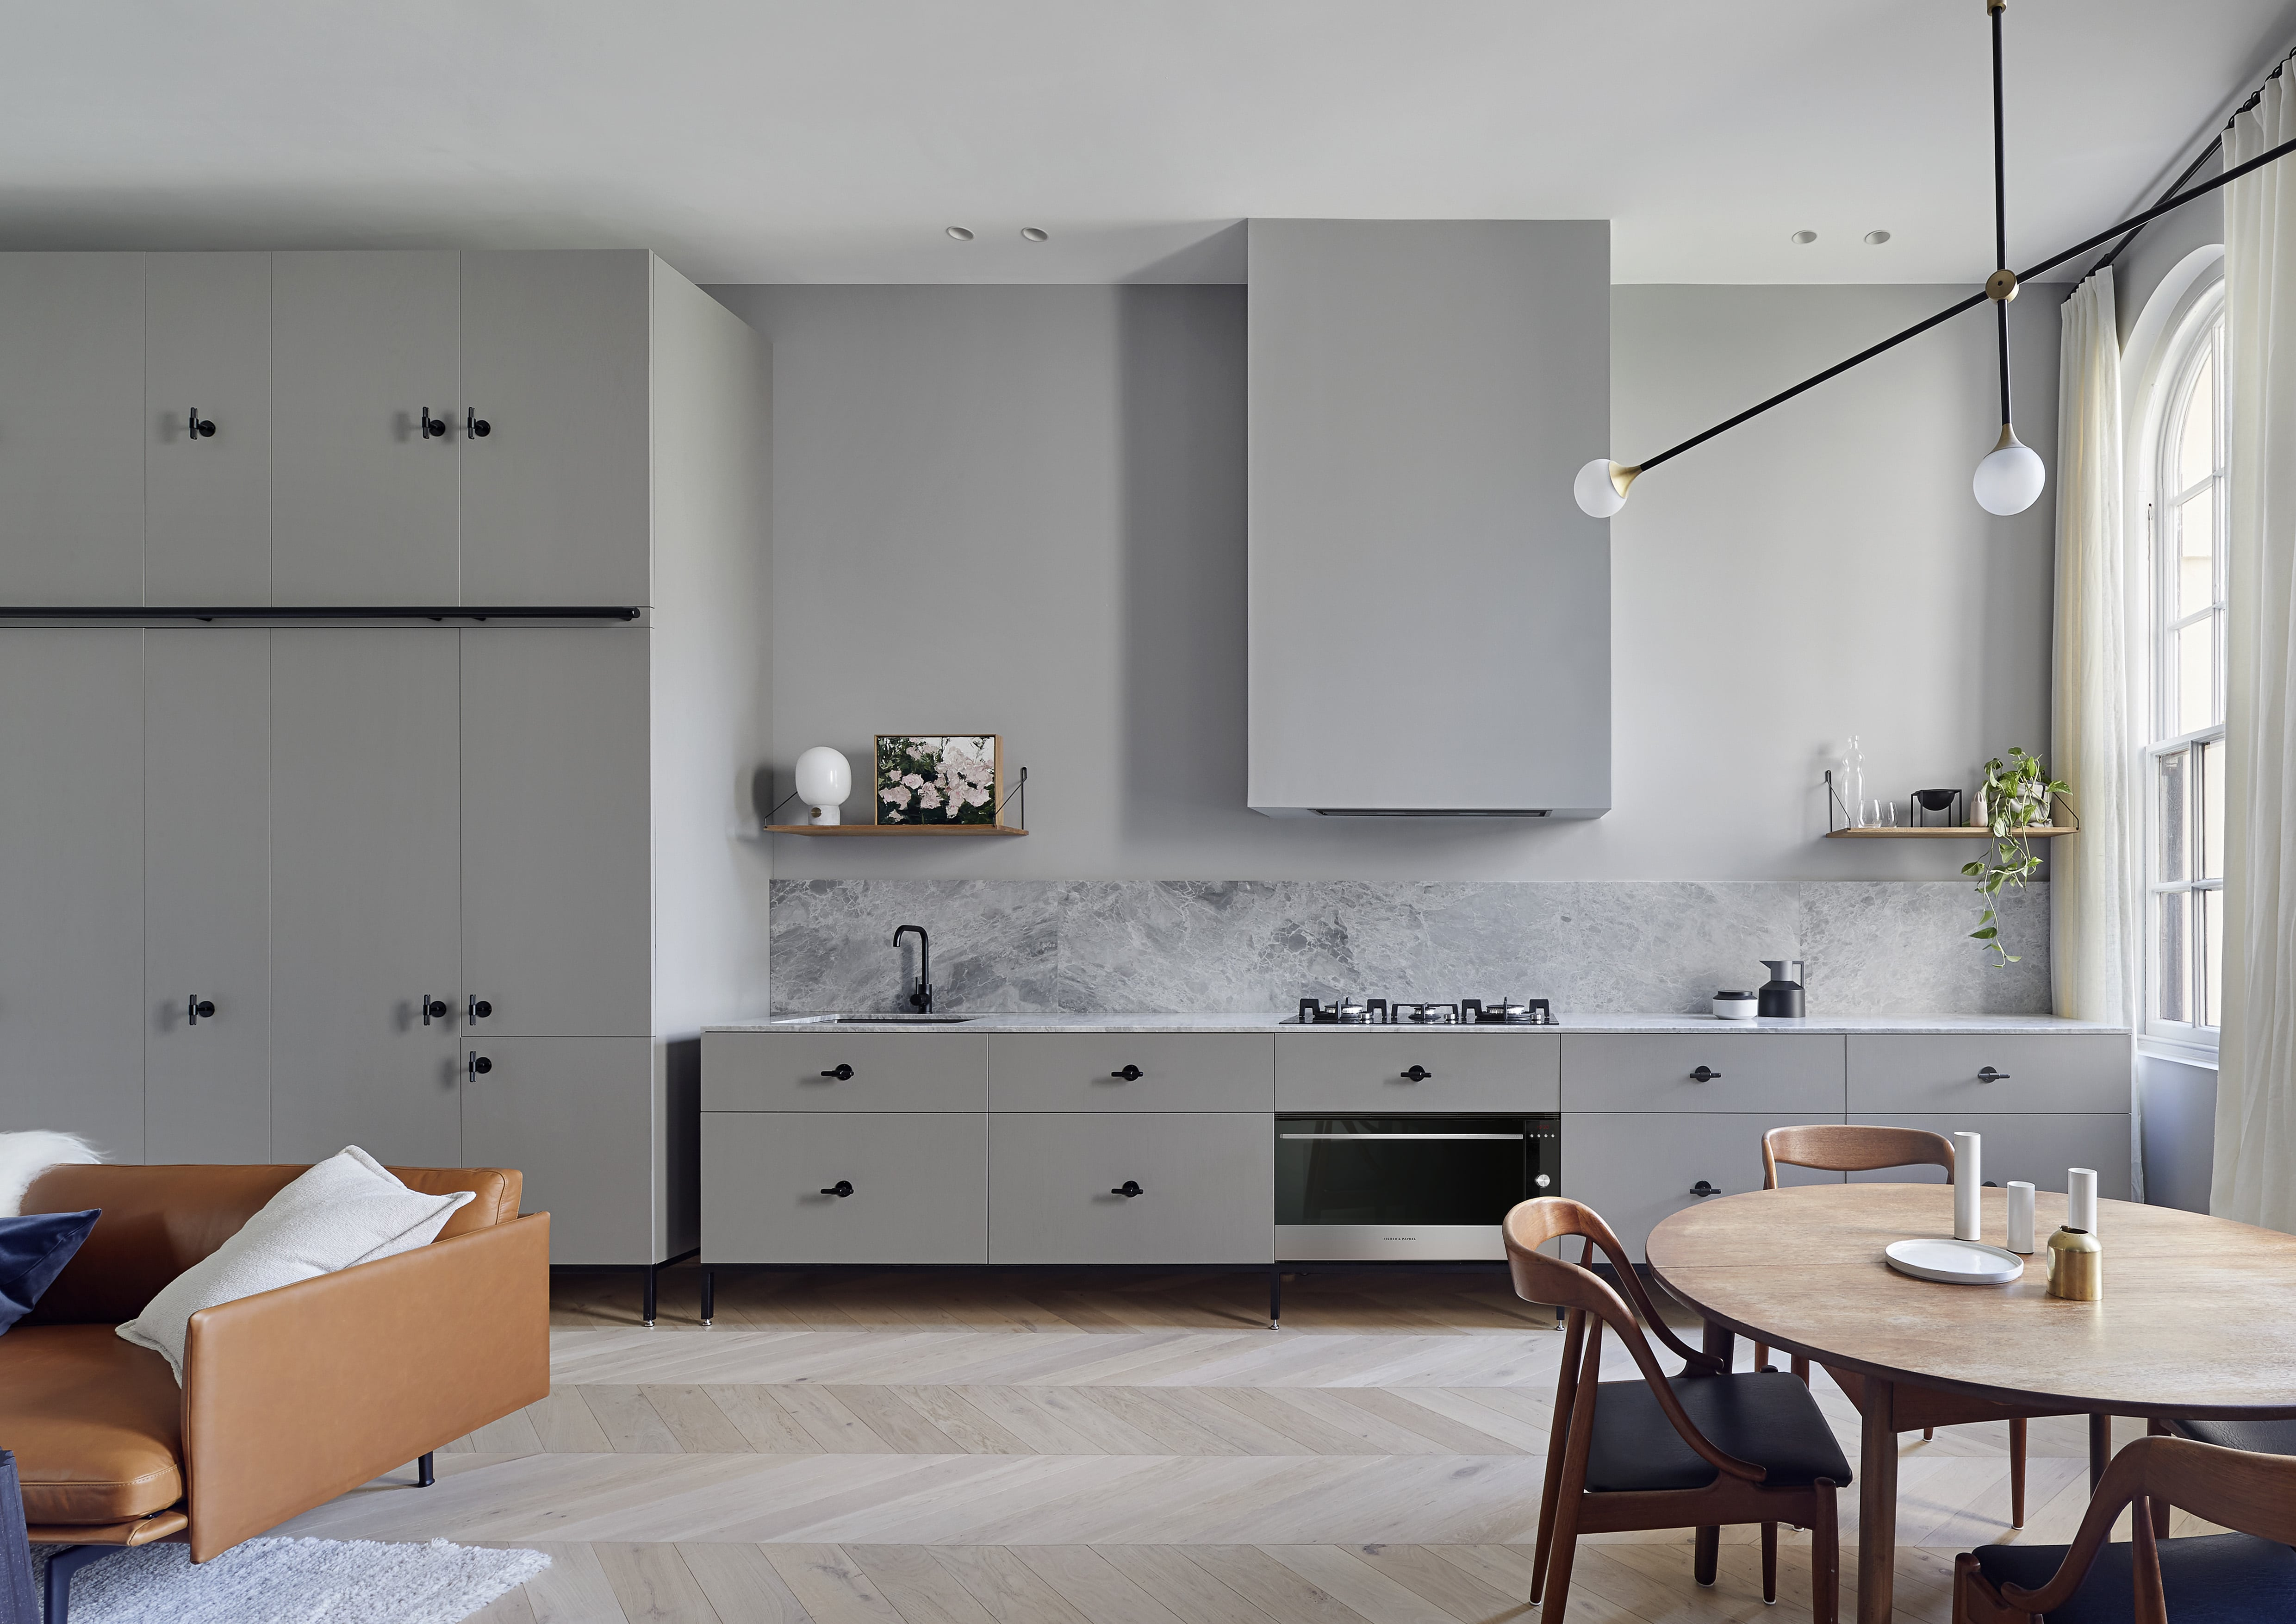 Kitchen of the Kew Apartment by Sarah Wolfendale - Integrated Fisher & Paykel Appliances